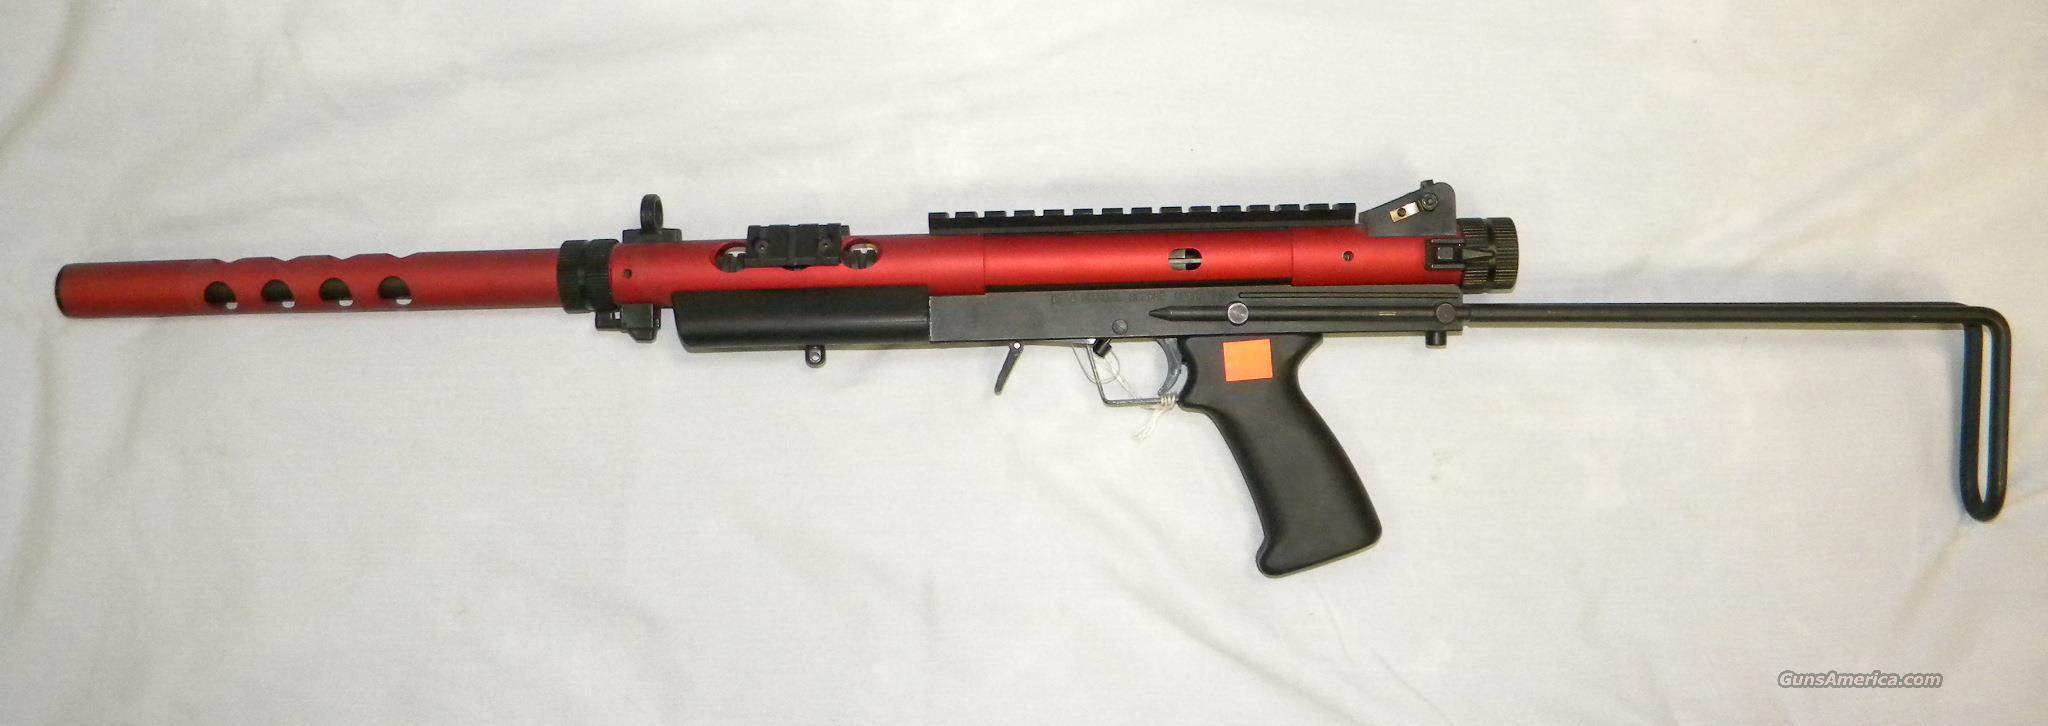 Red AWI Feather, .22 LR With Extras  Guns > Rifles > Feather Industry Rifles